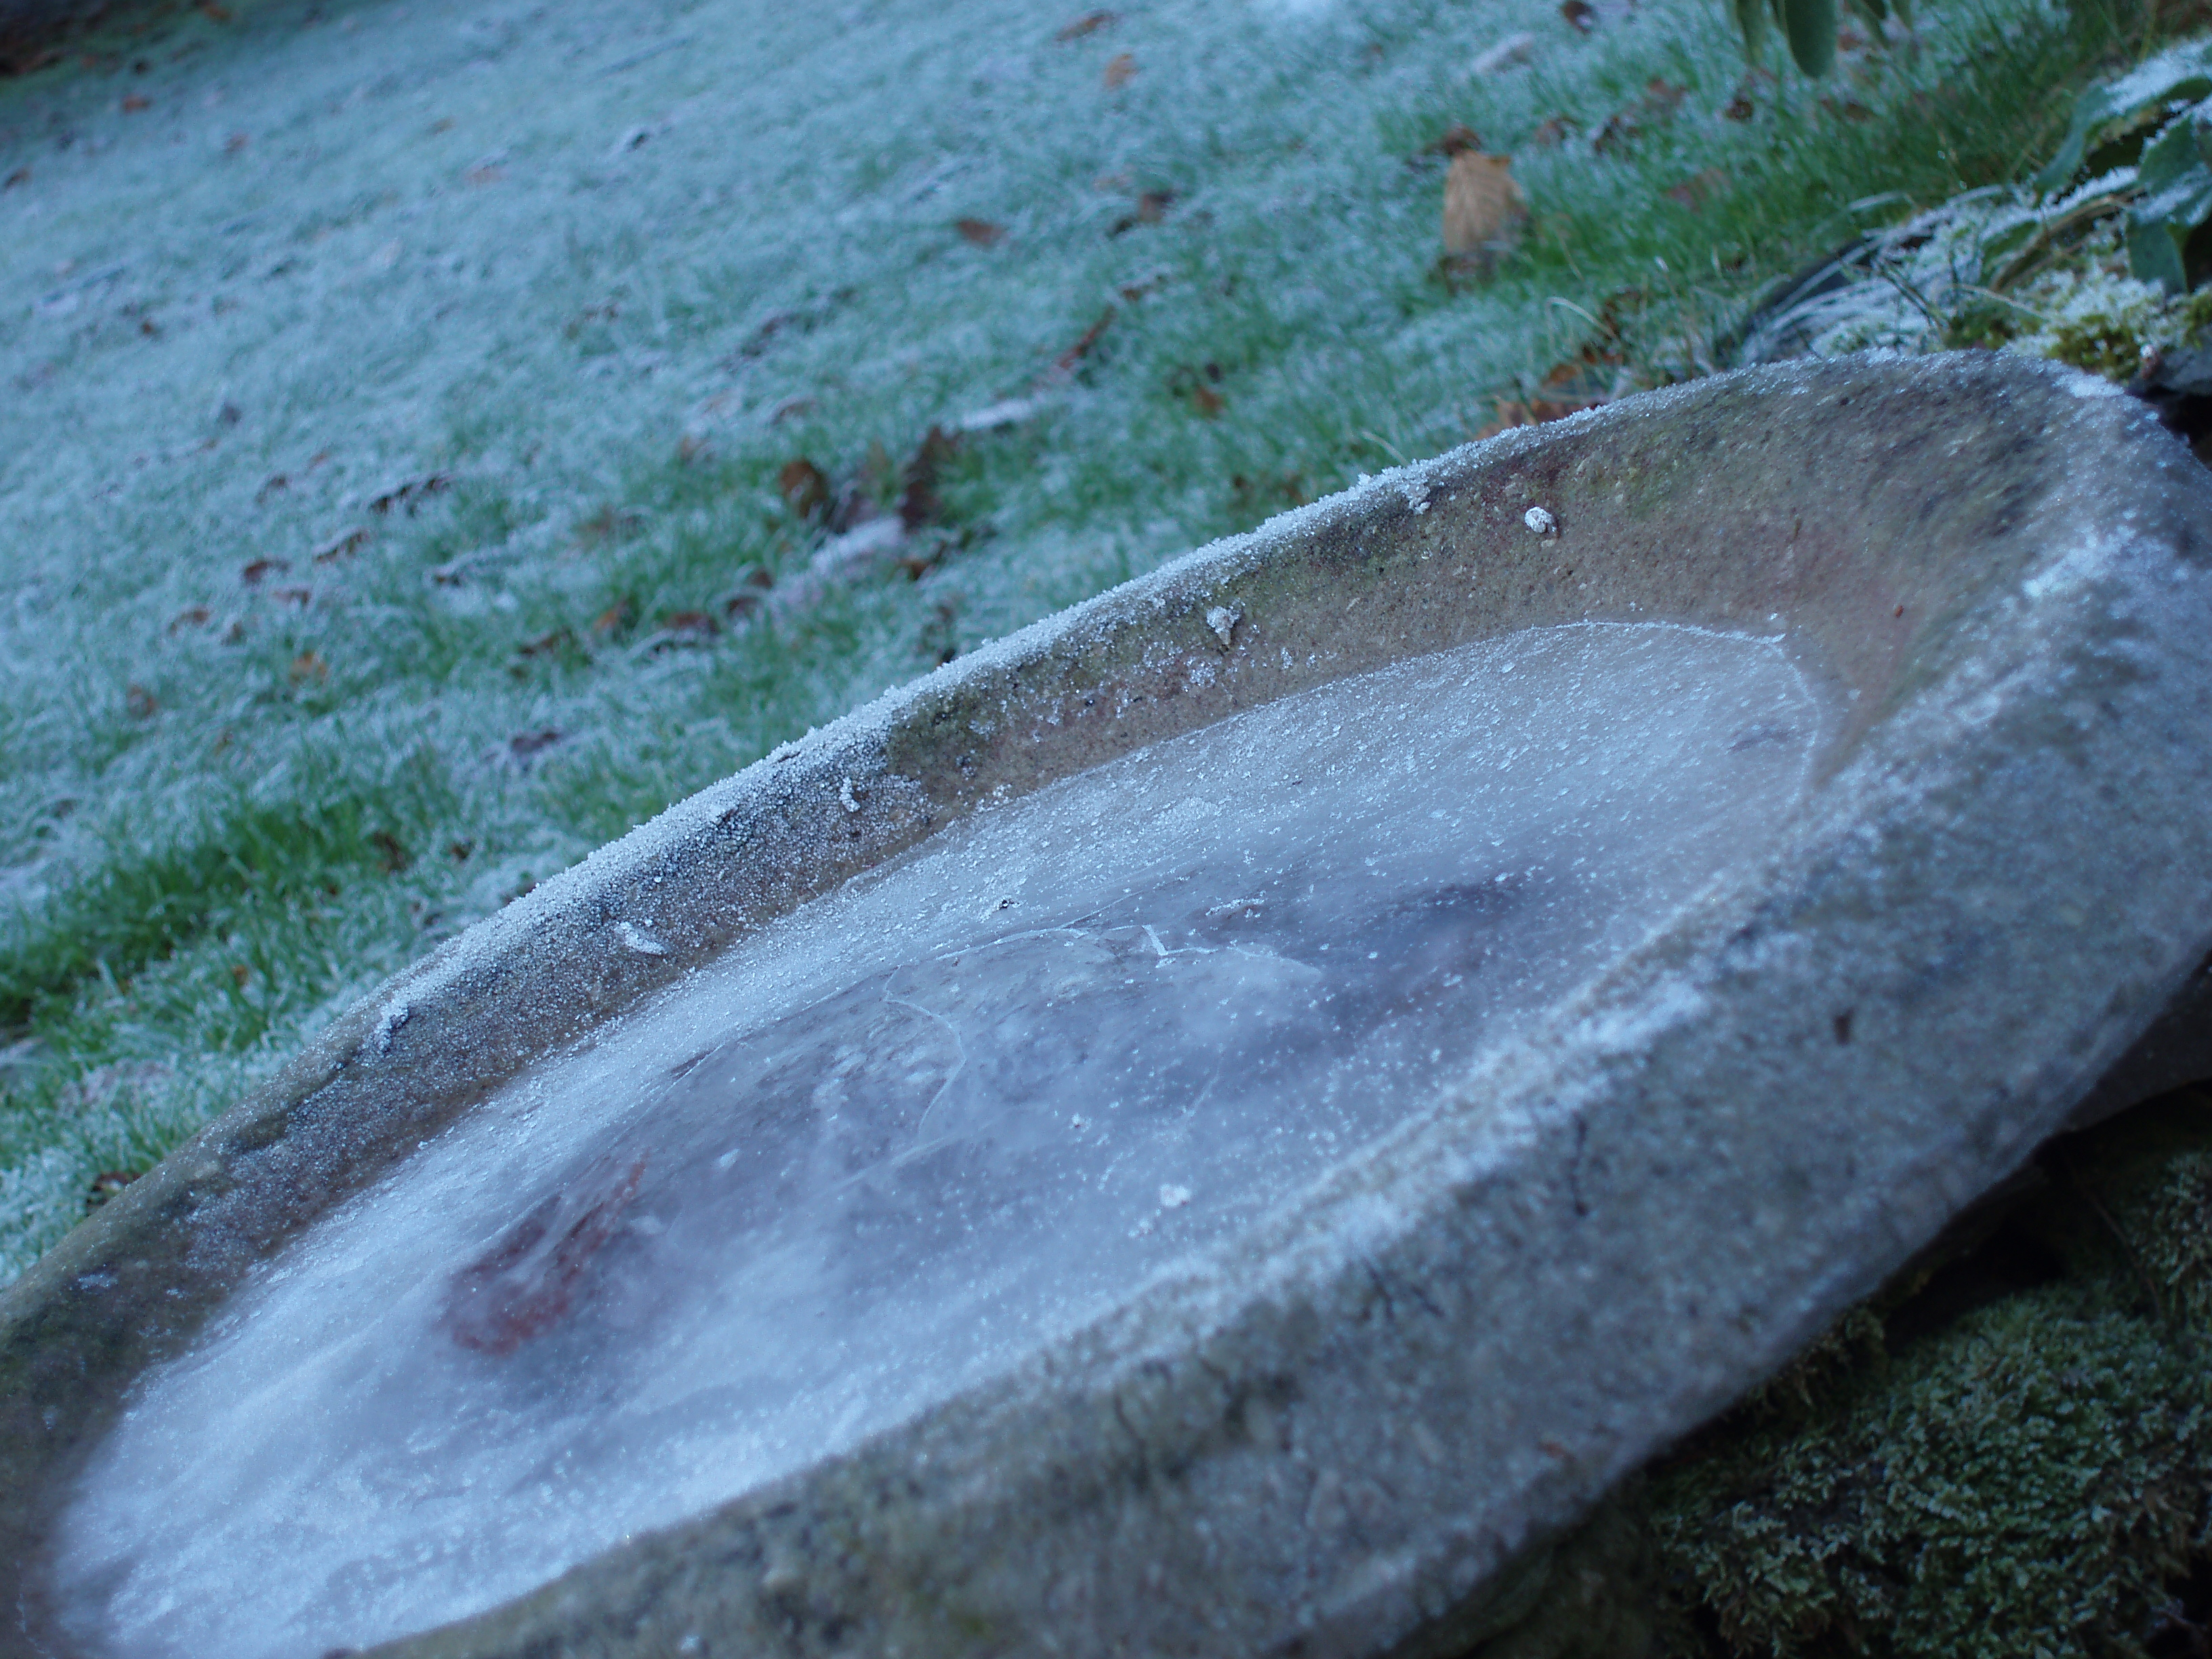 frozen birdbath and frost lawn winter morning scene